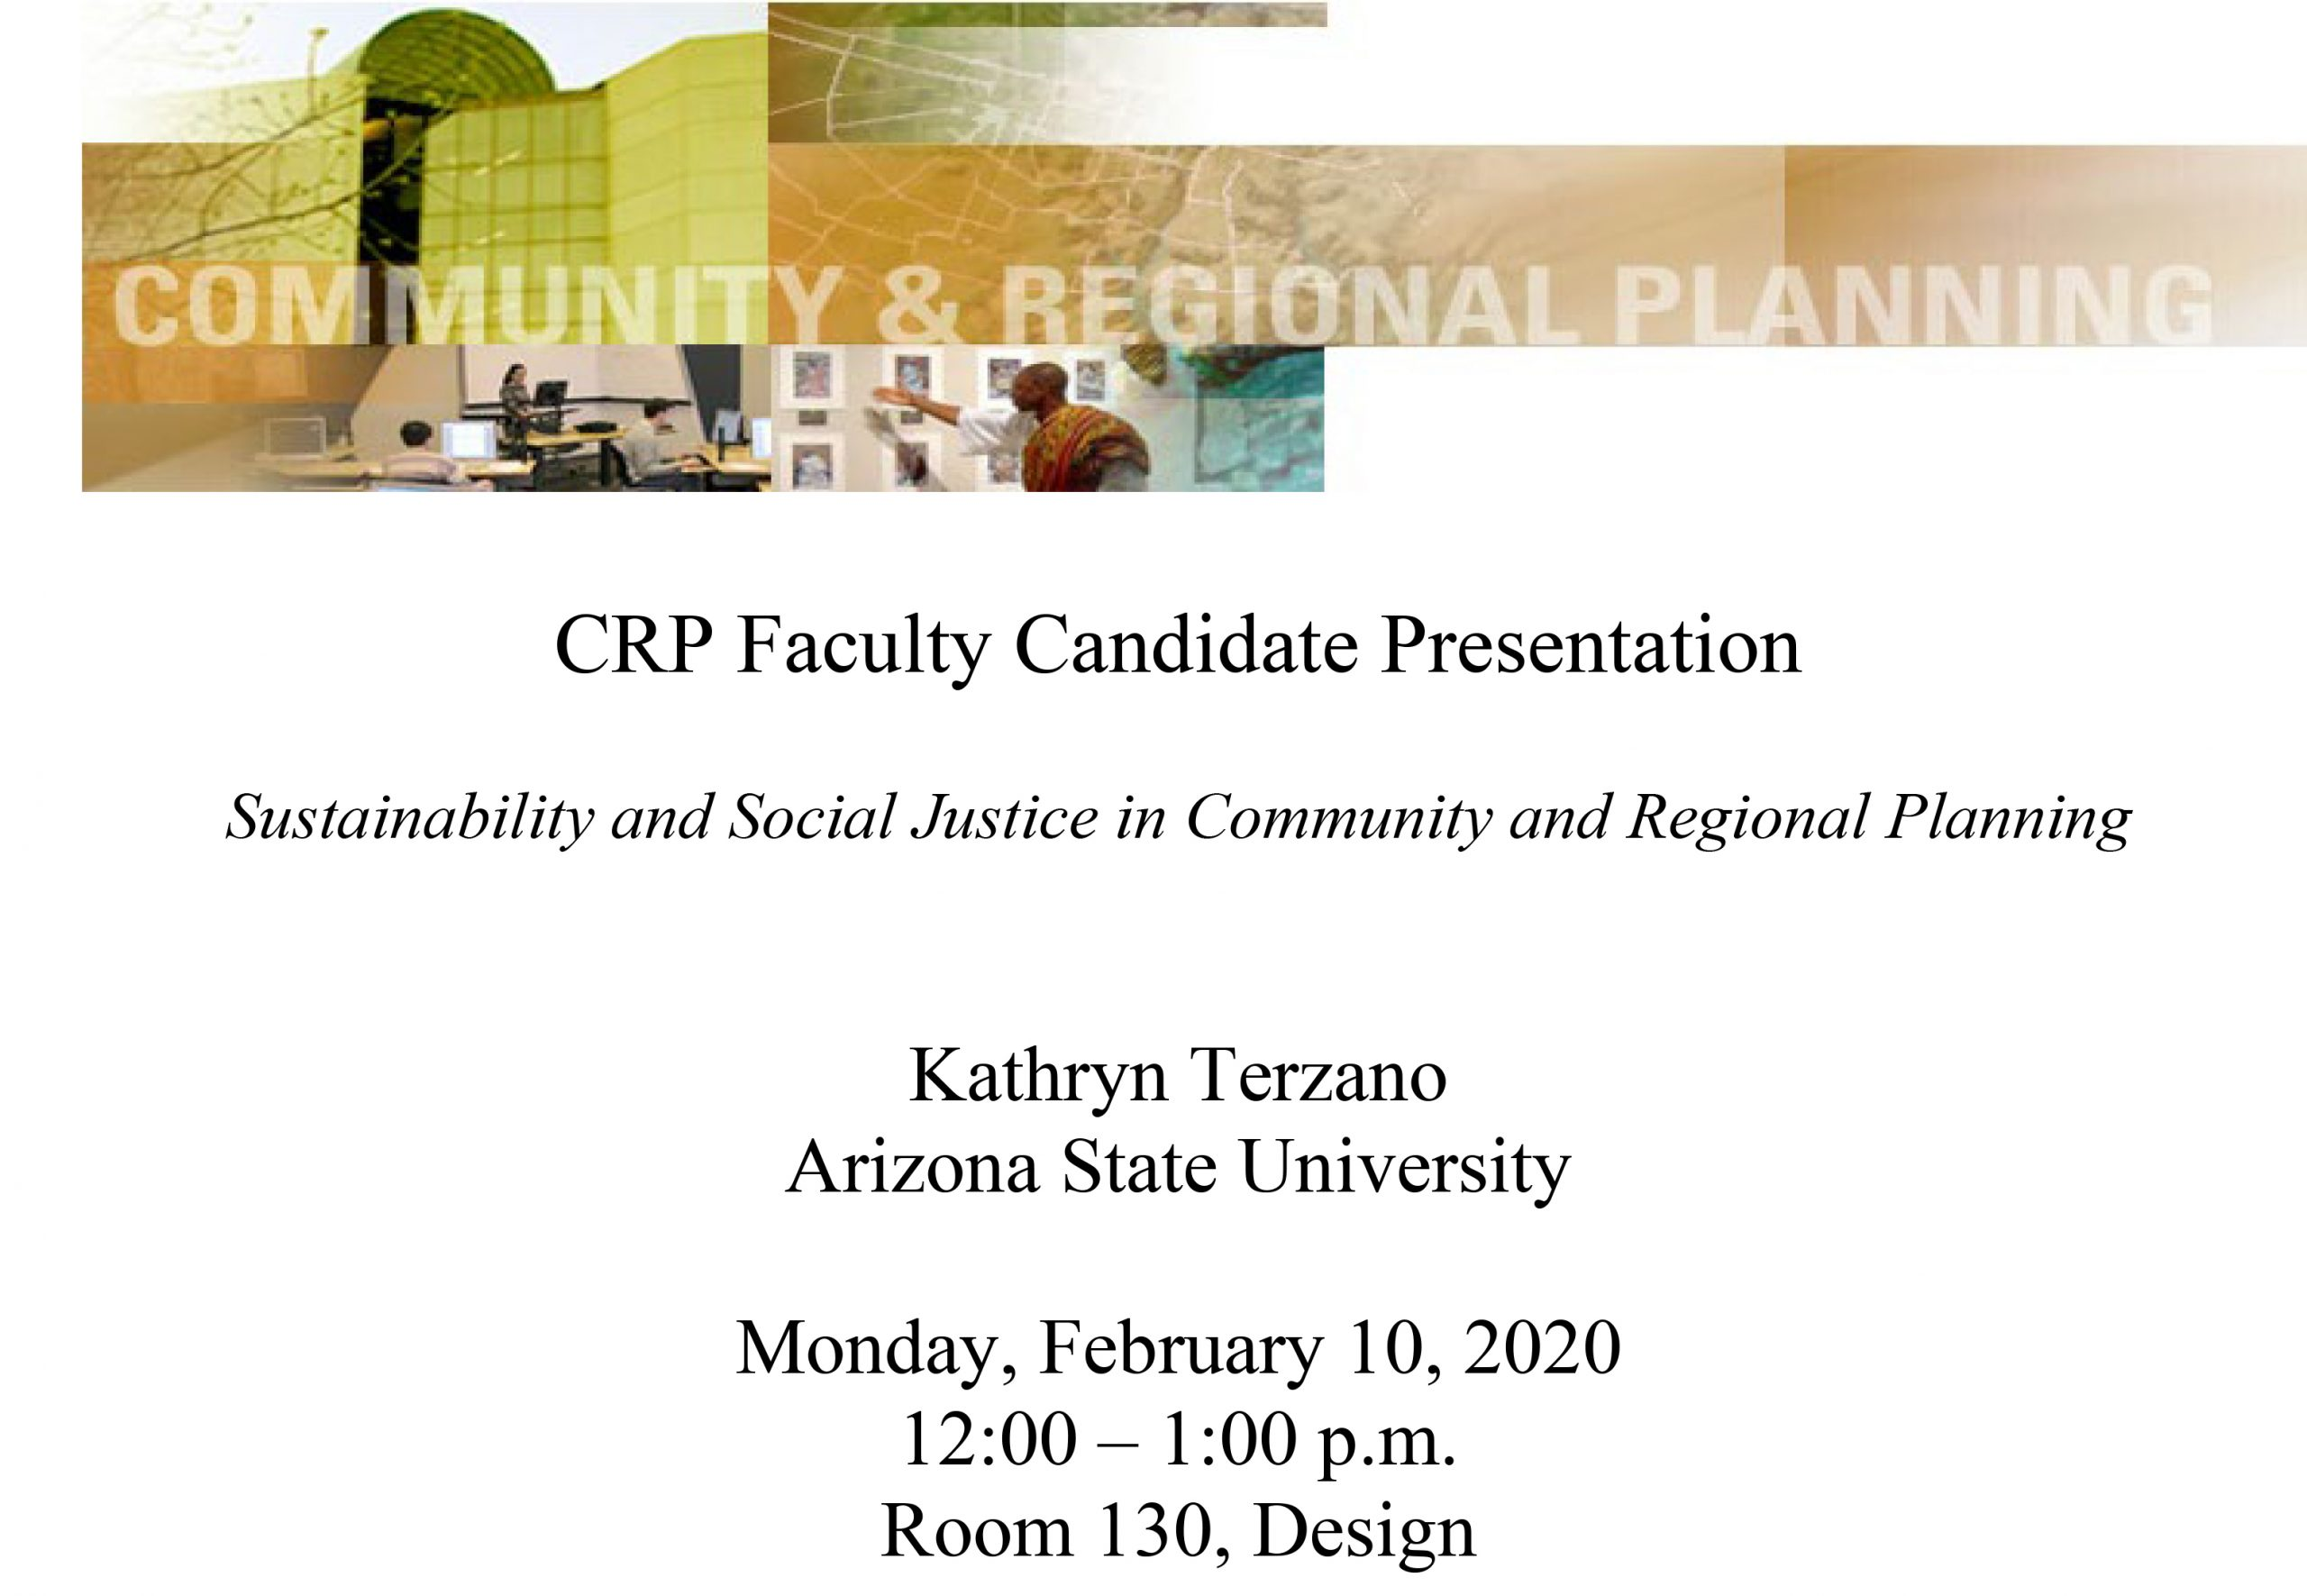 Kathryn Terzano - CRP Faculty Candidate Presentation